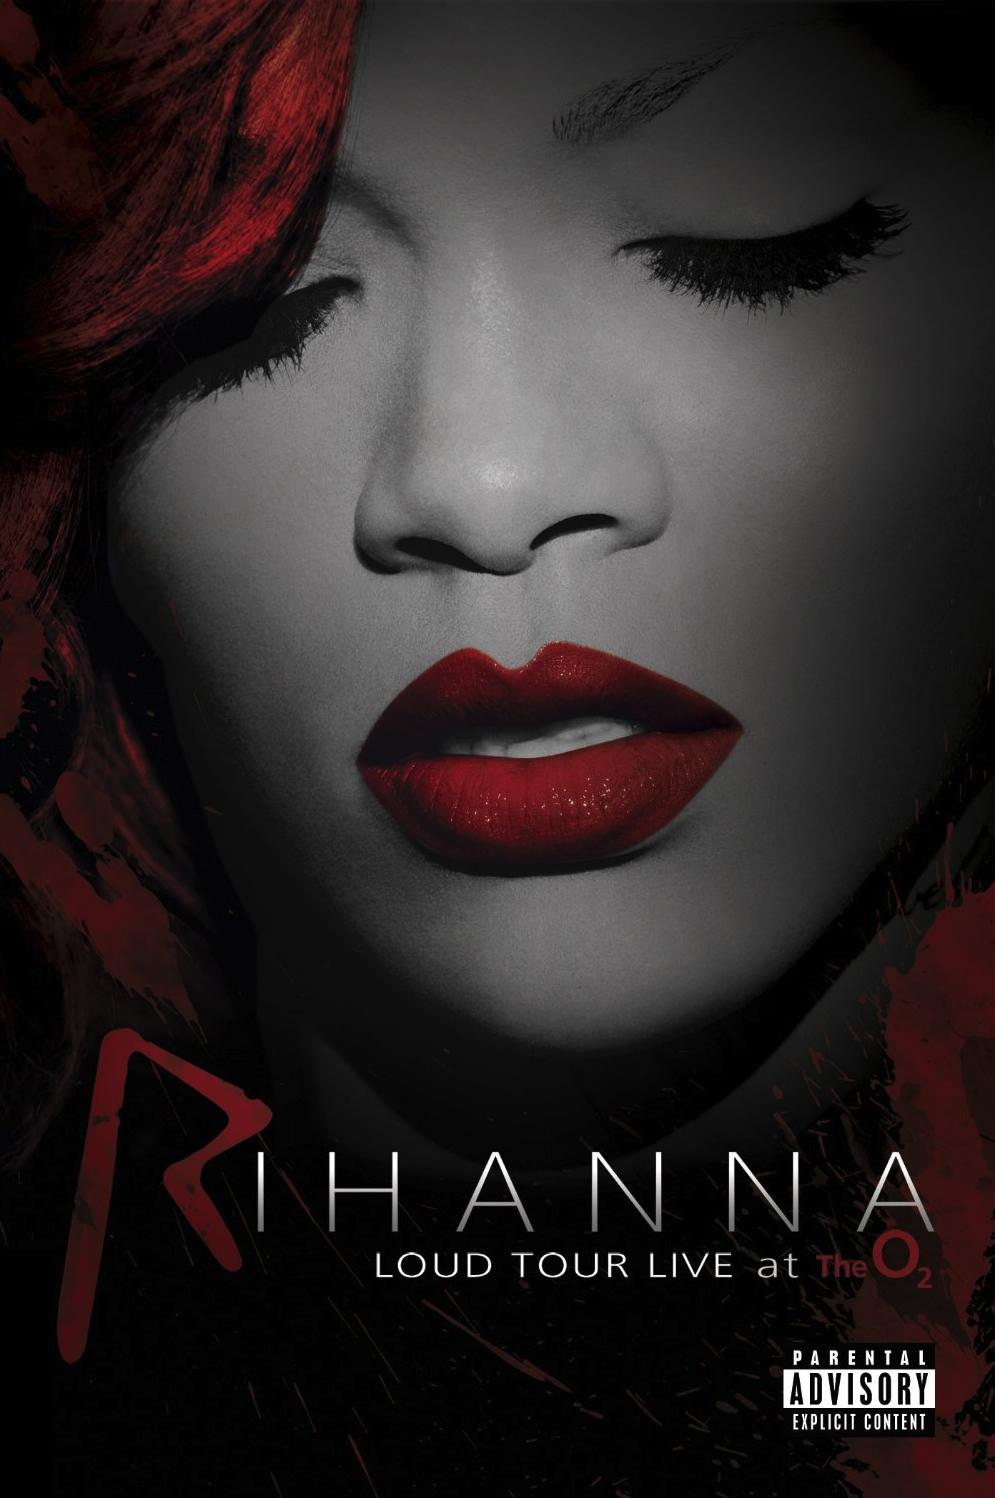 Rihanna Loud Tour Live at the O2 2012